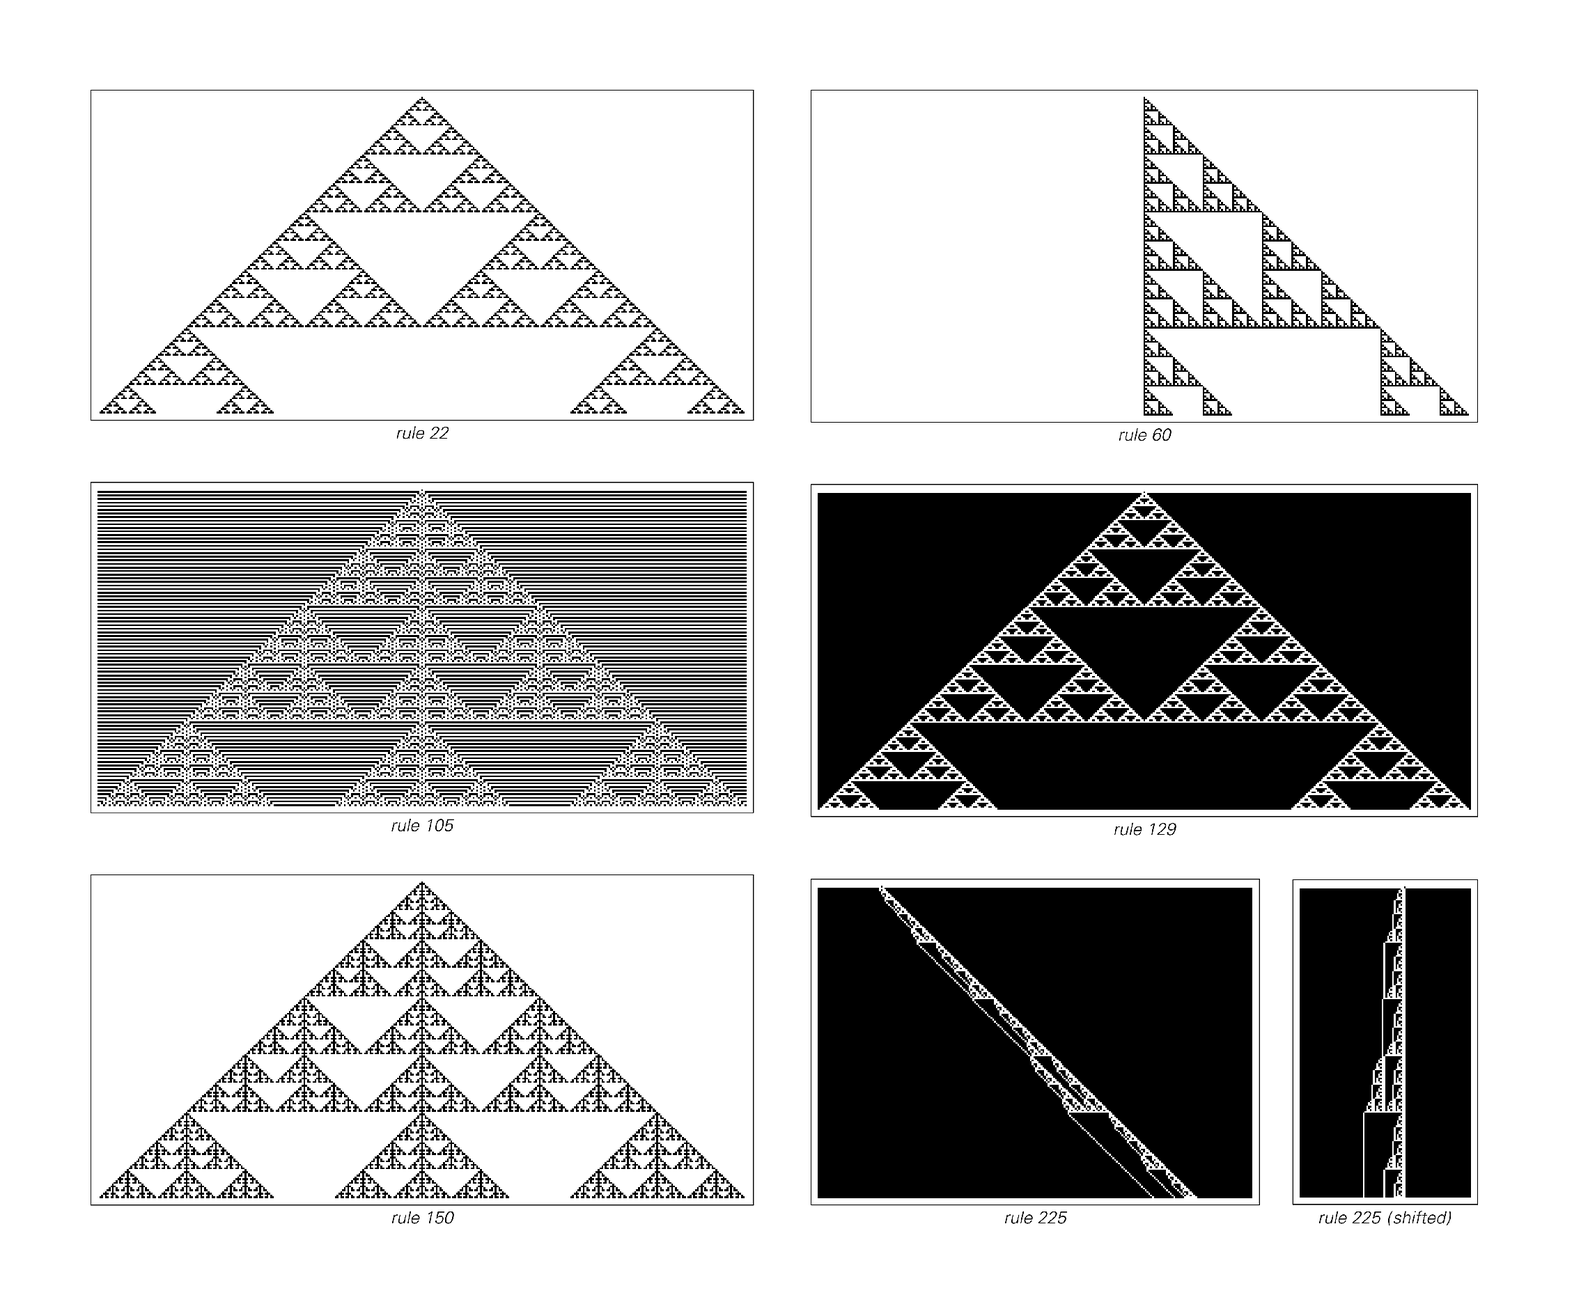 Nested/fractal patterns